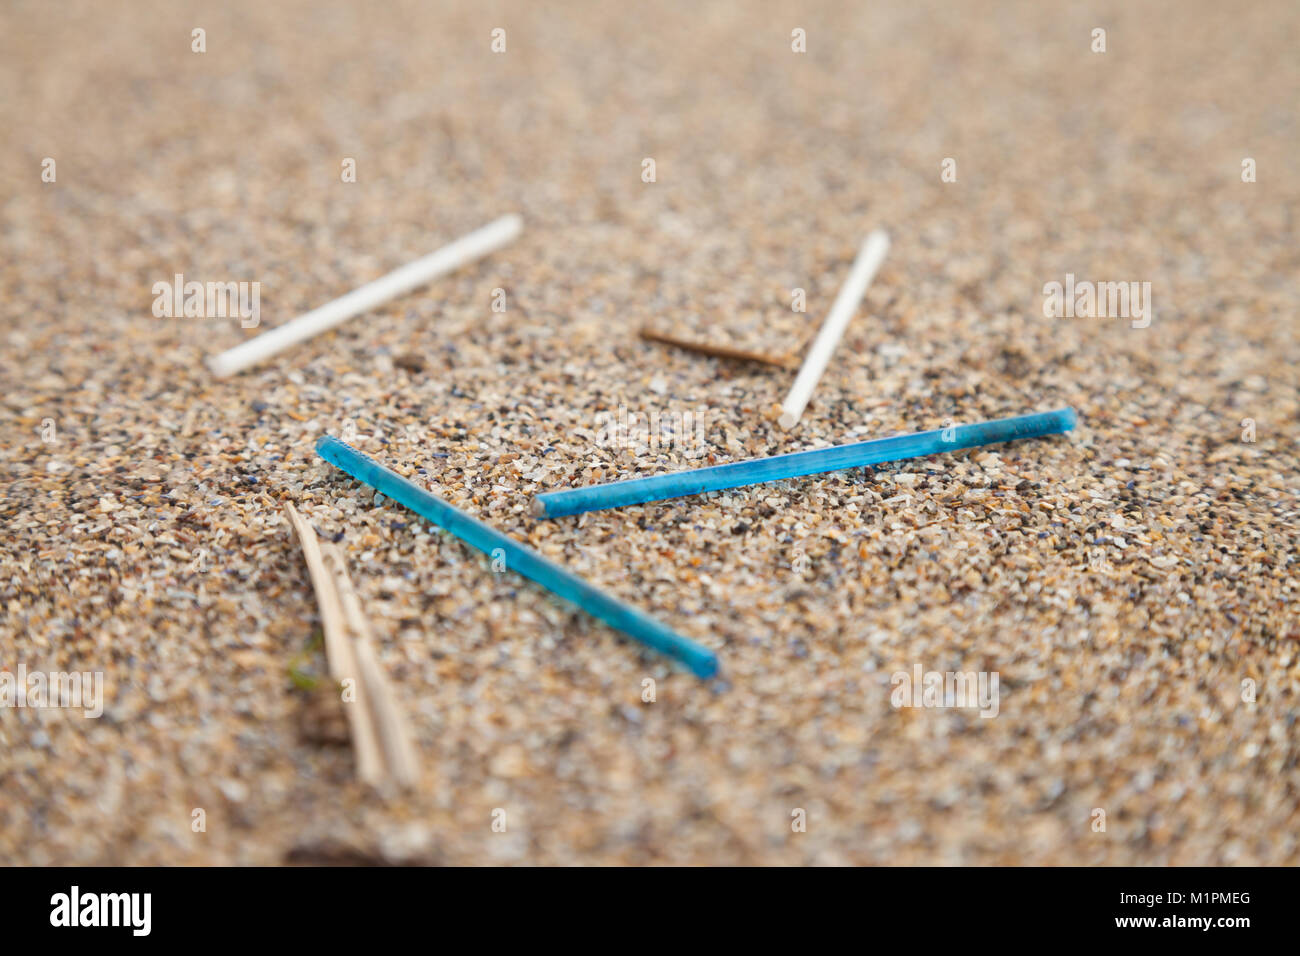 Plastic cotton ear bud sticks washed up on a beach in Fife Scotland - Stock Image